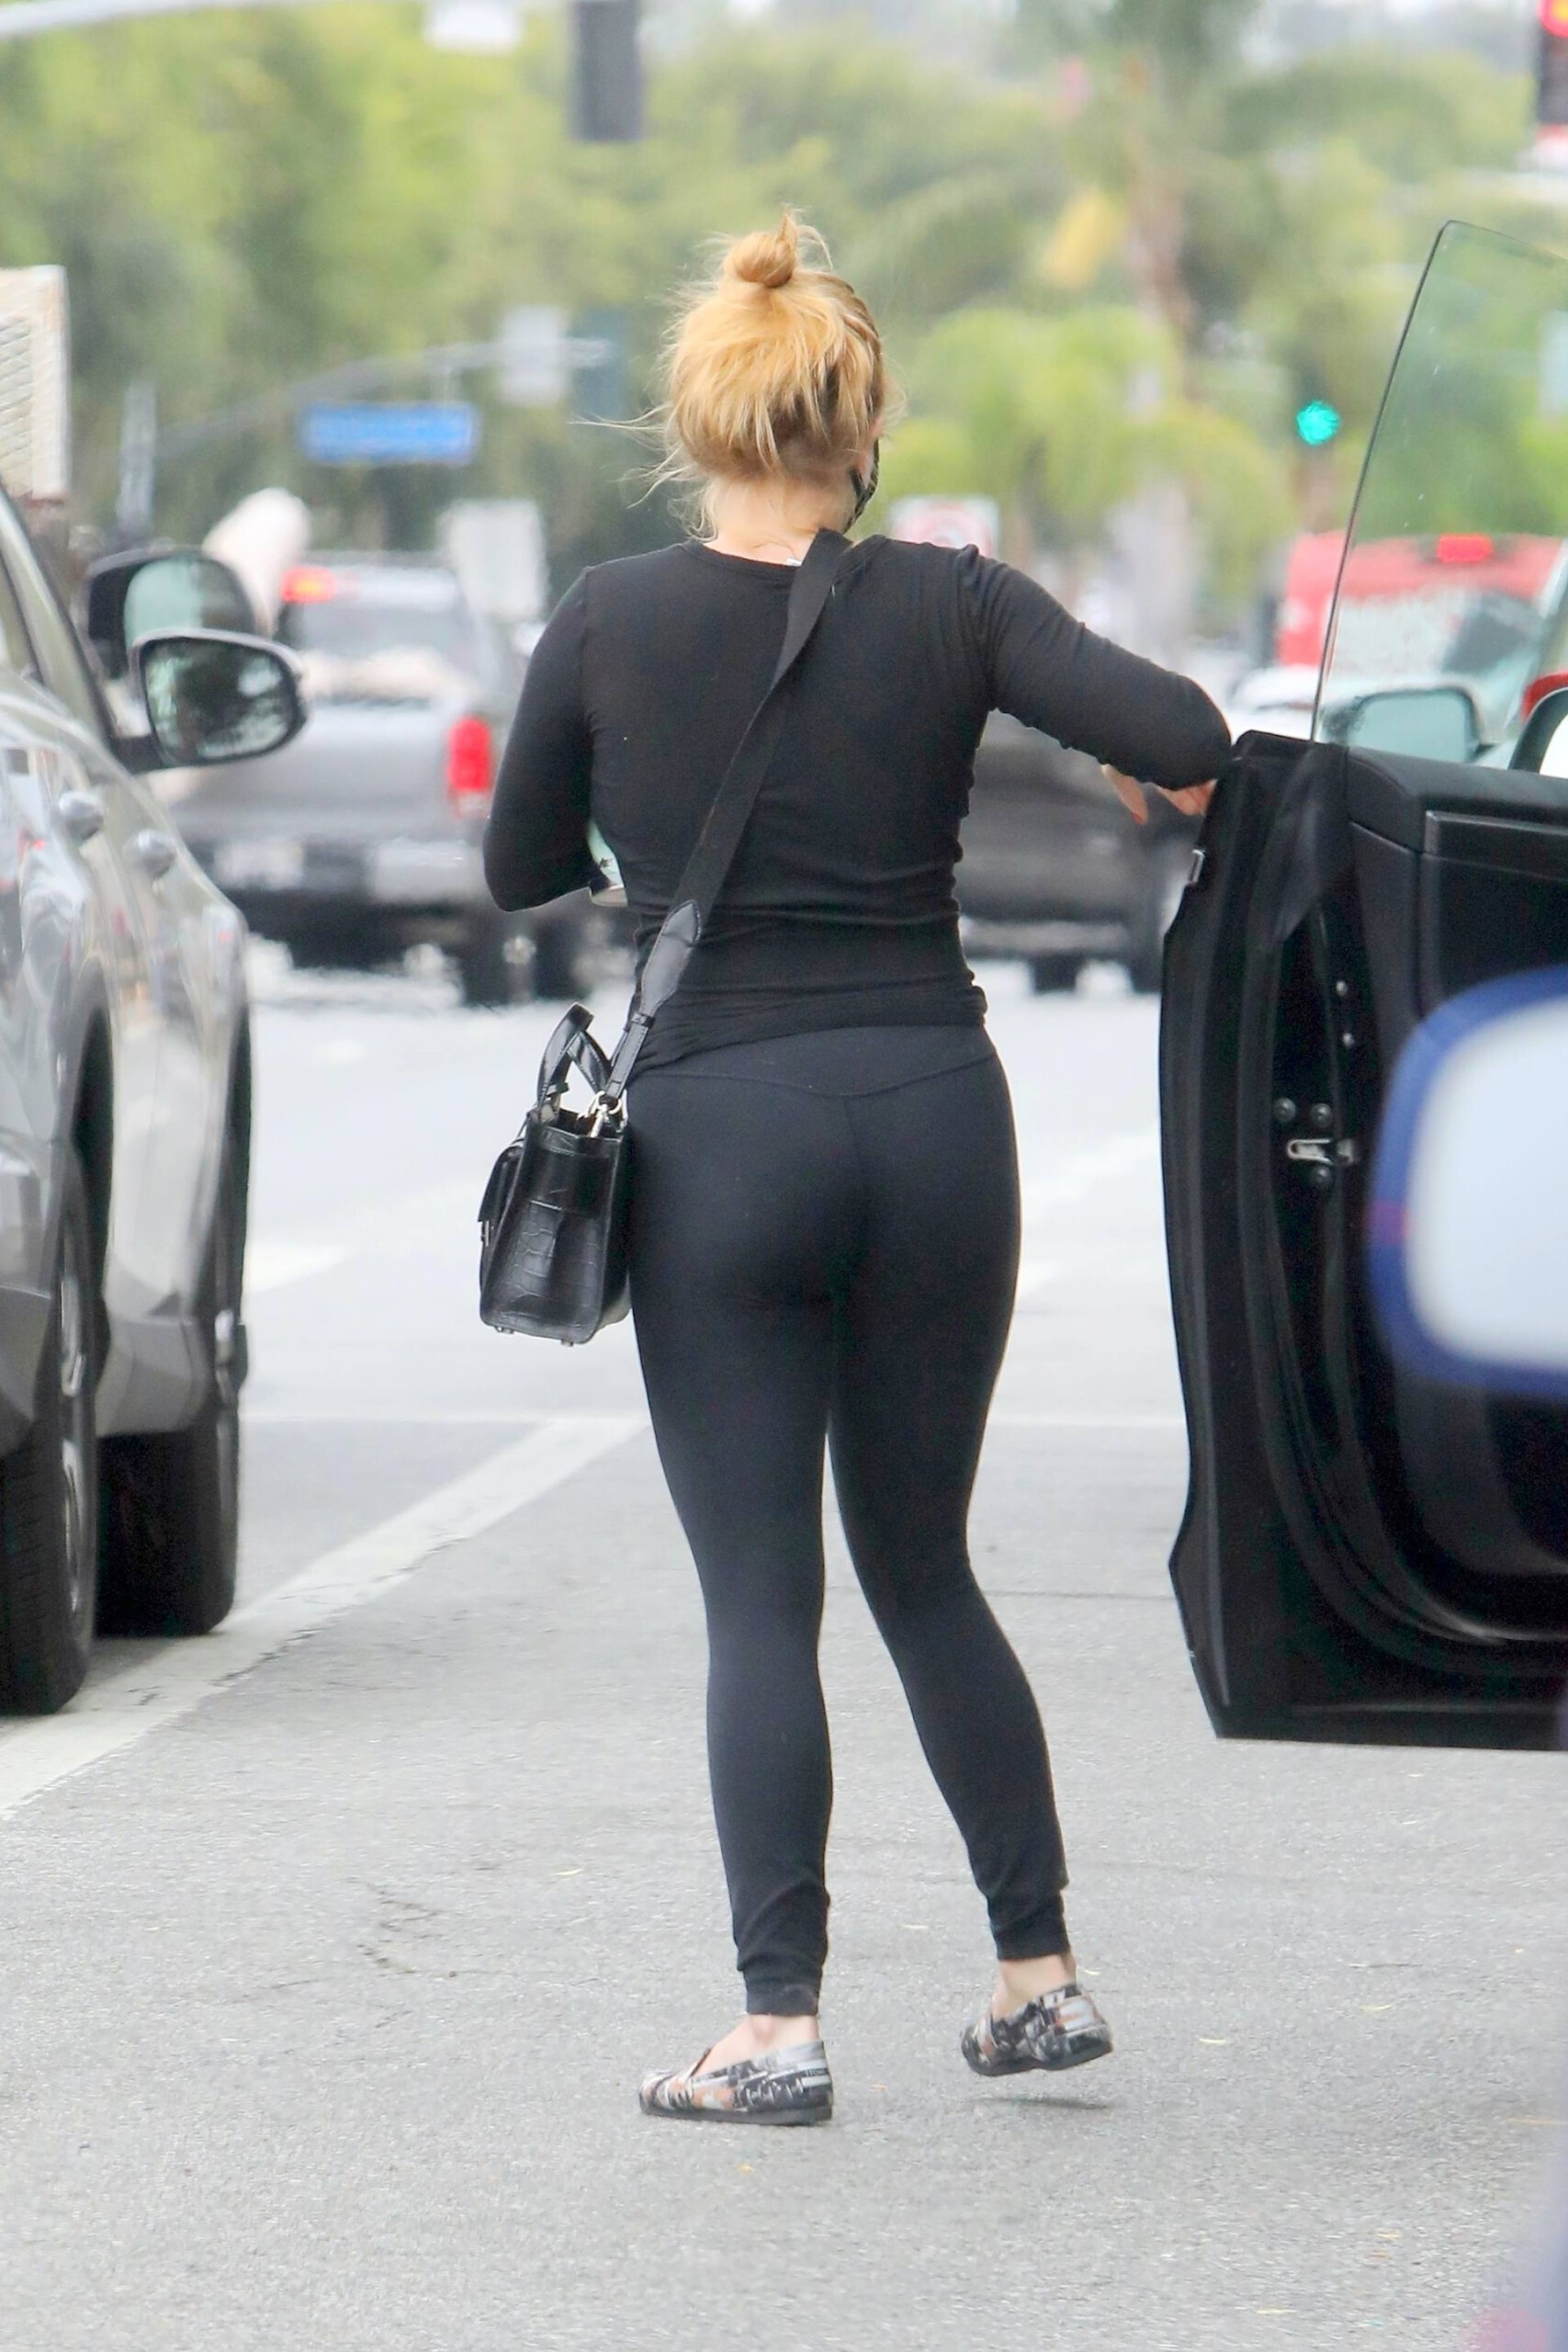 Ariel Winter – Hot Body In Black Leggings Out In West Hollywood 0004